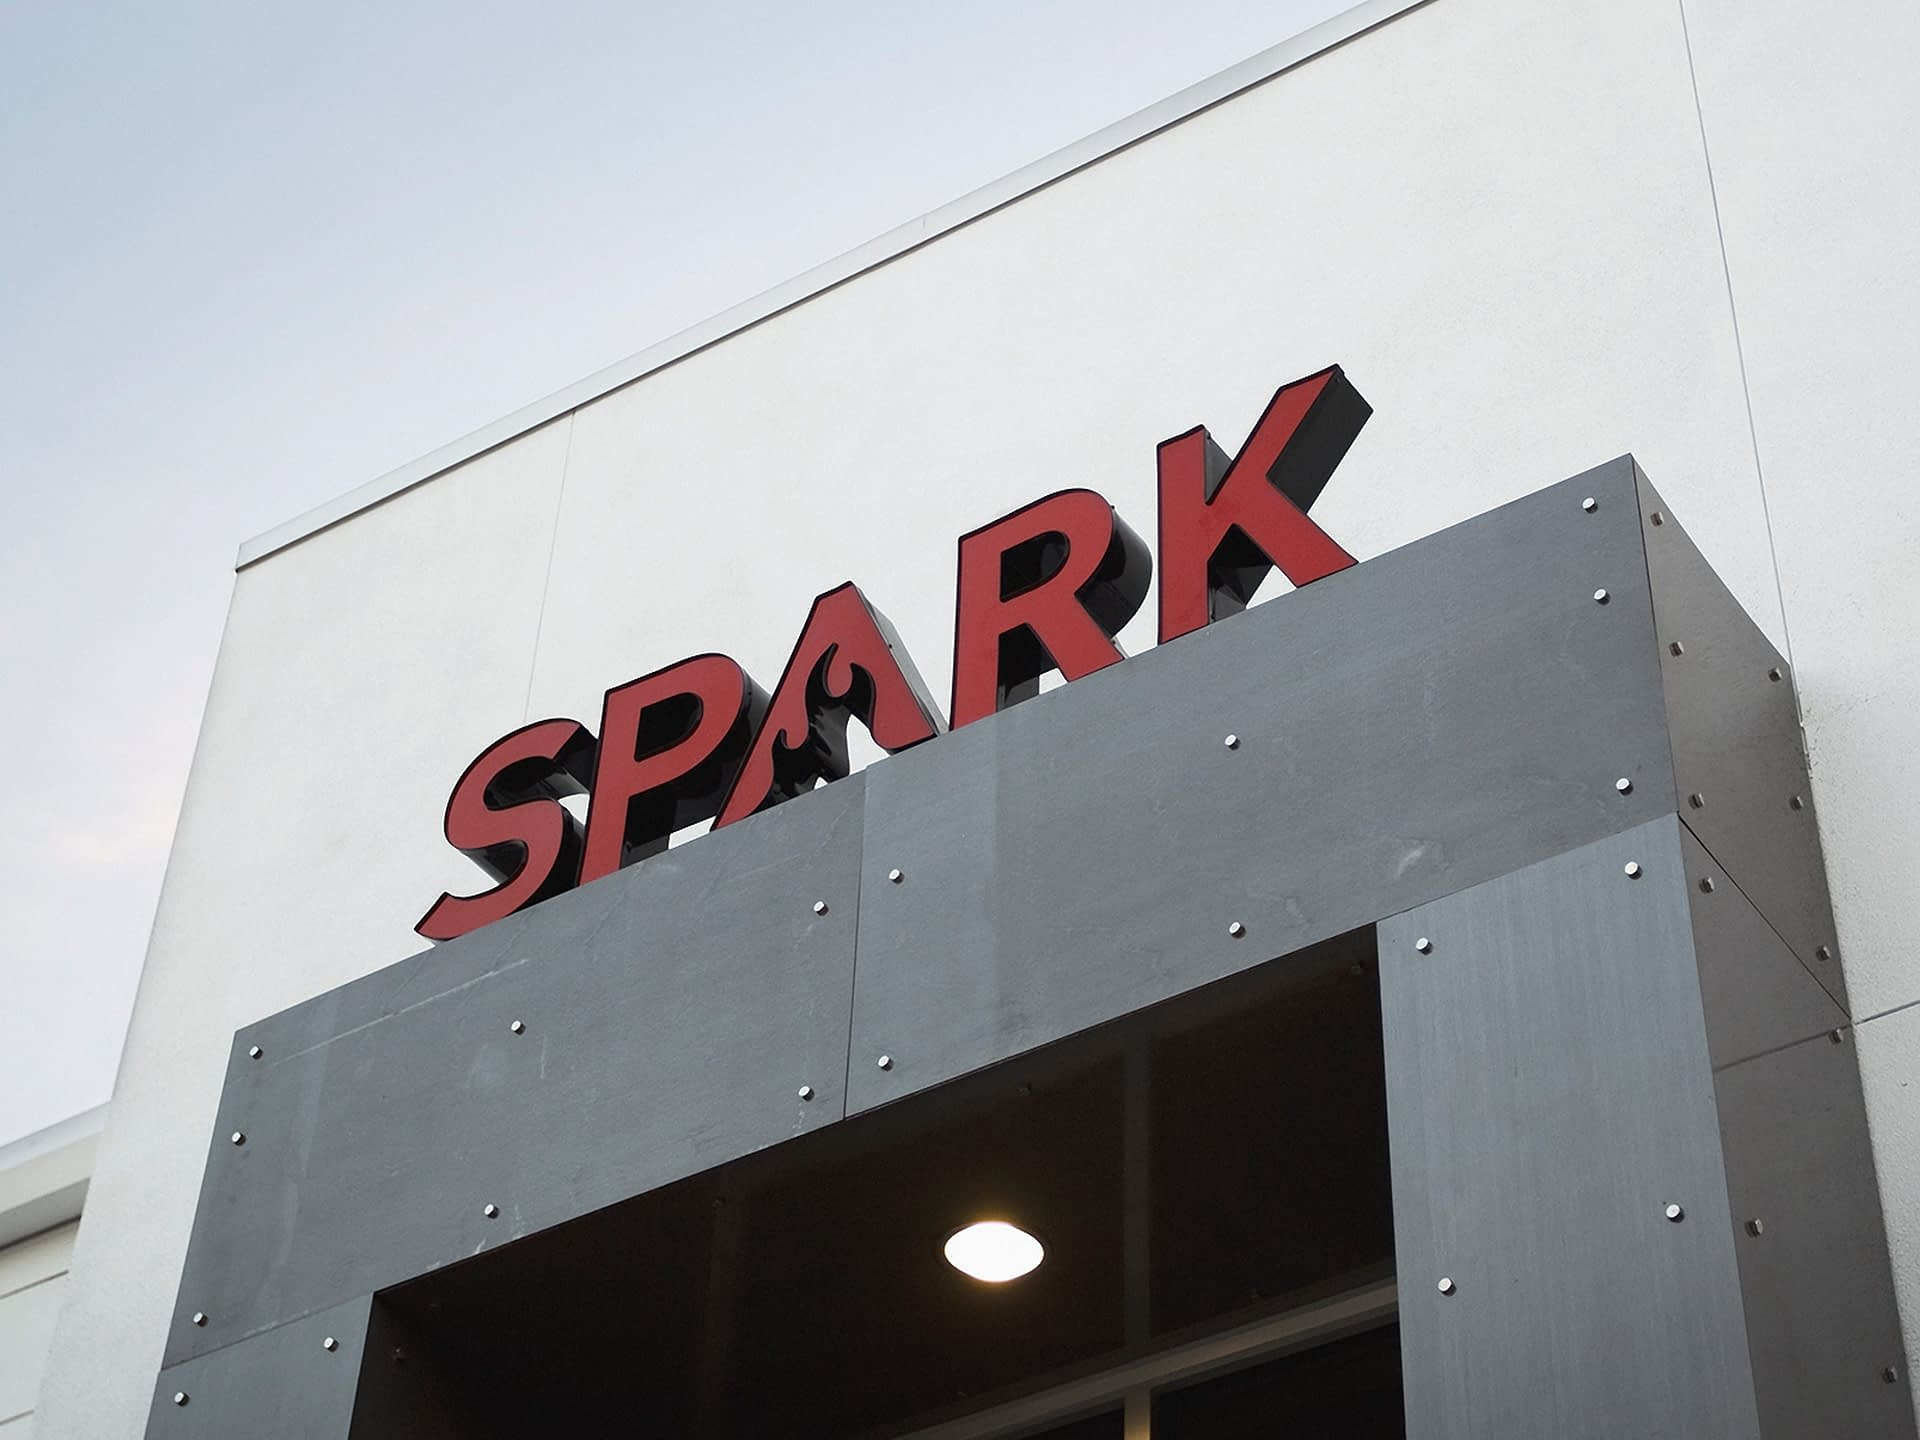 Exterior signage for marketing agency in SPARK Tampa, Florida.